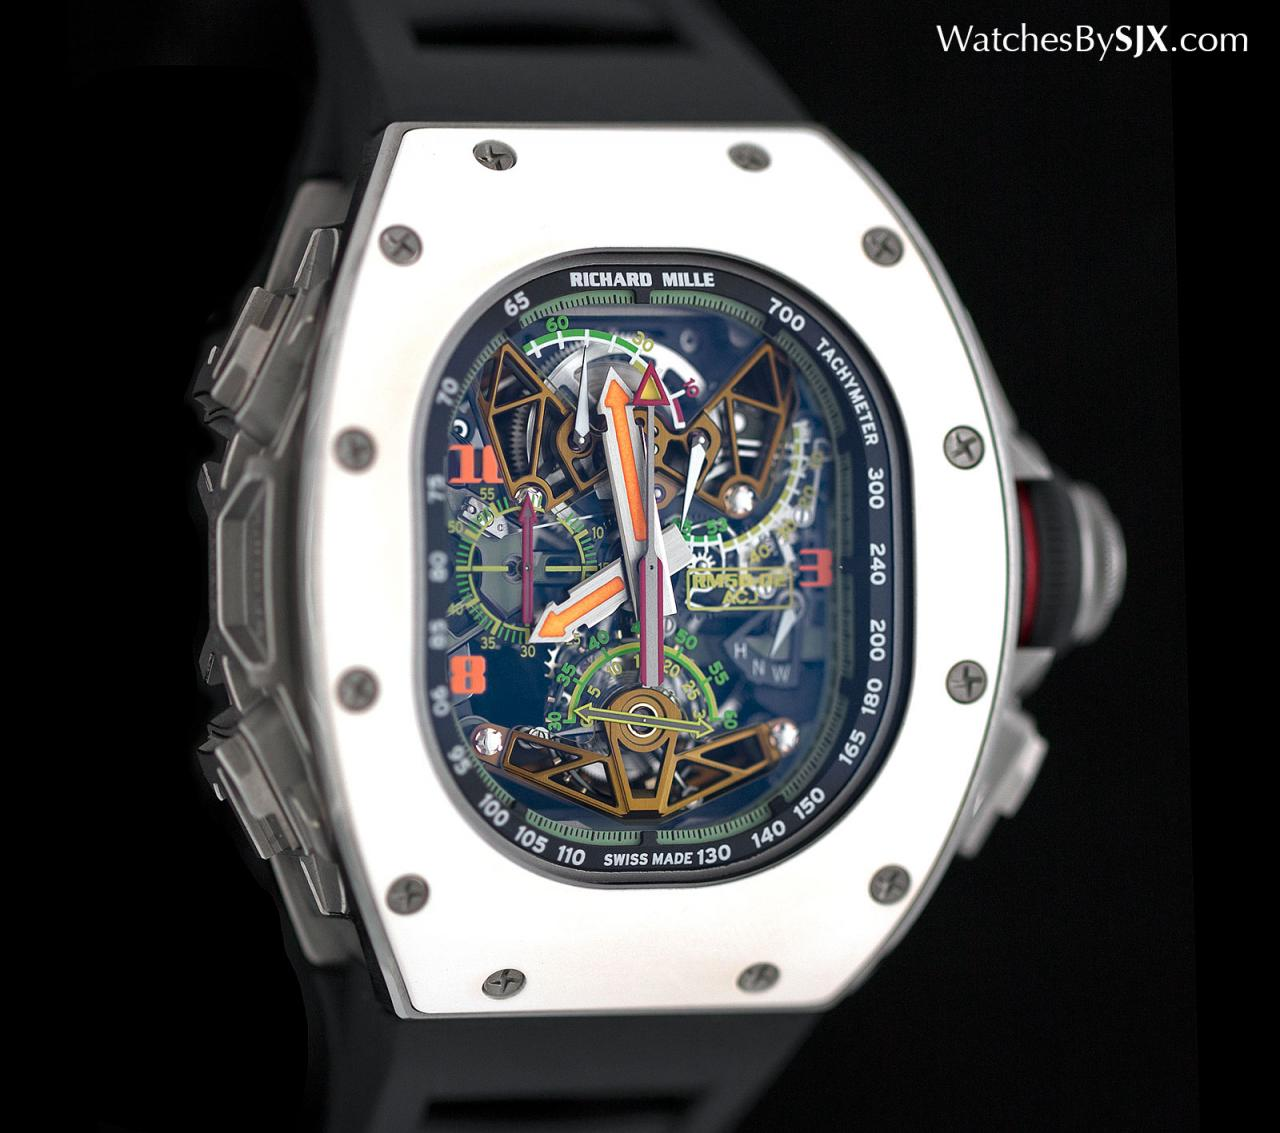 Richard Mille RM 50-02 ACJ Tourbillon Split Seconds Chronograph 8